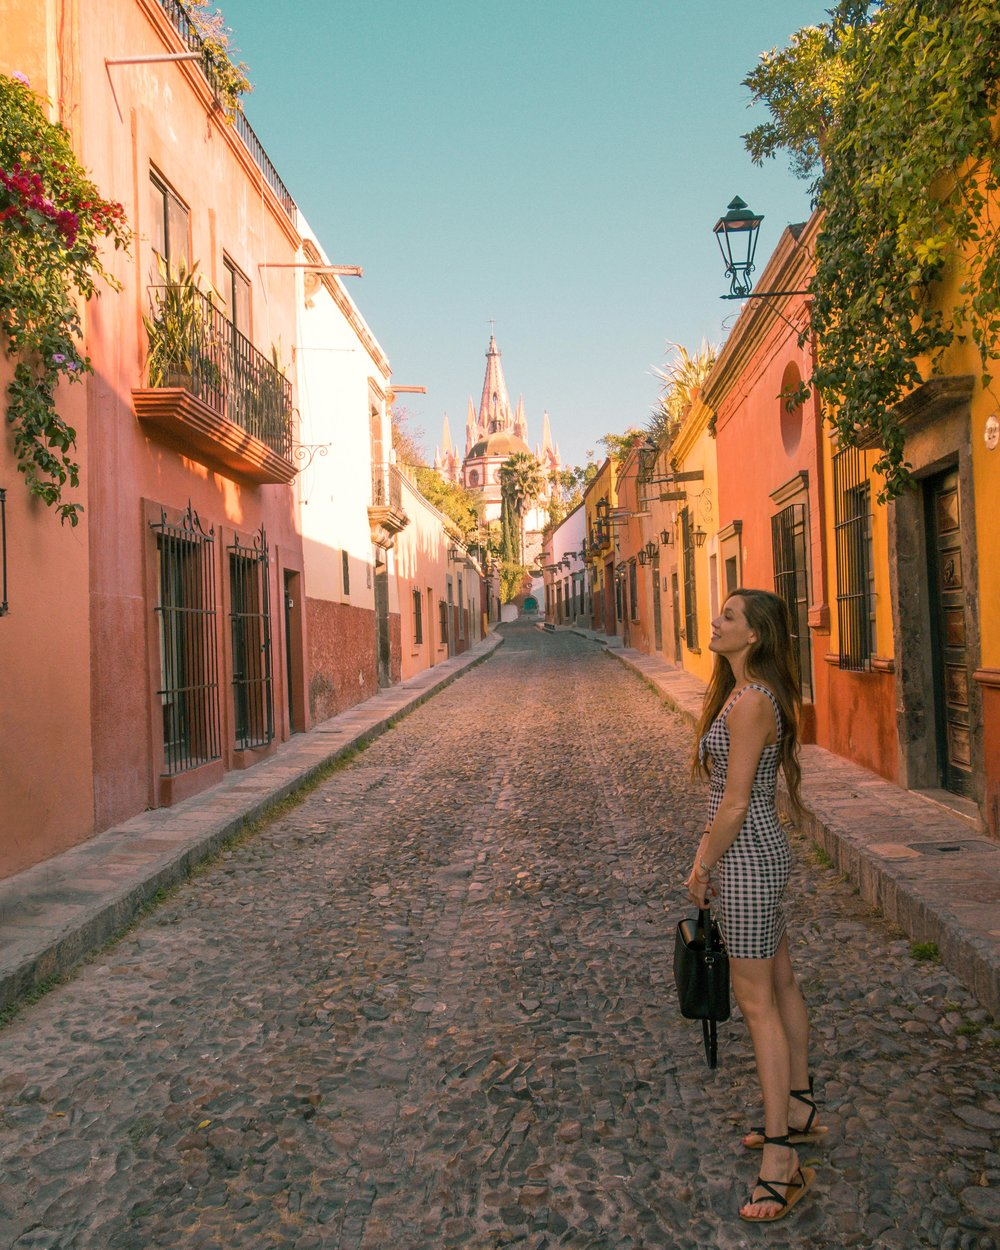 photo taken from Calle Aldama in San Miguel de Allende, visit early in the morning and the street will be empty!